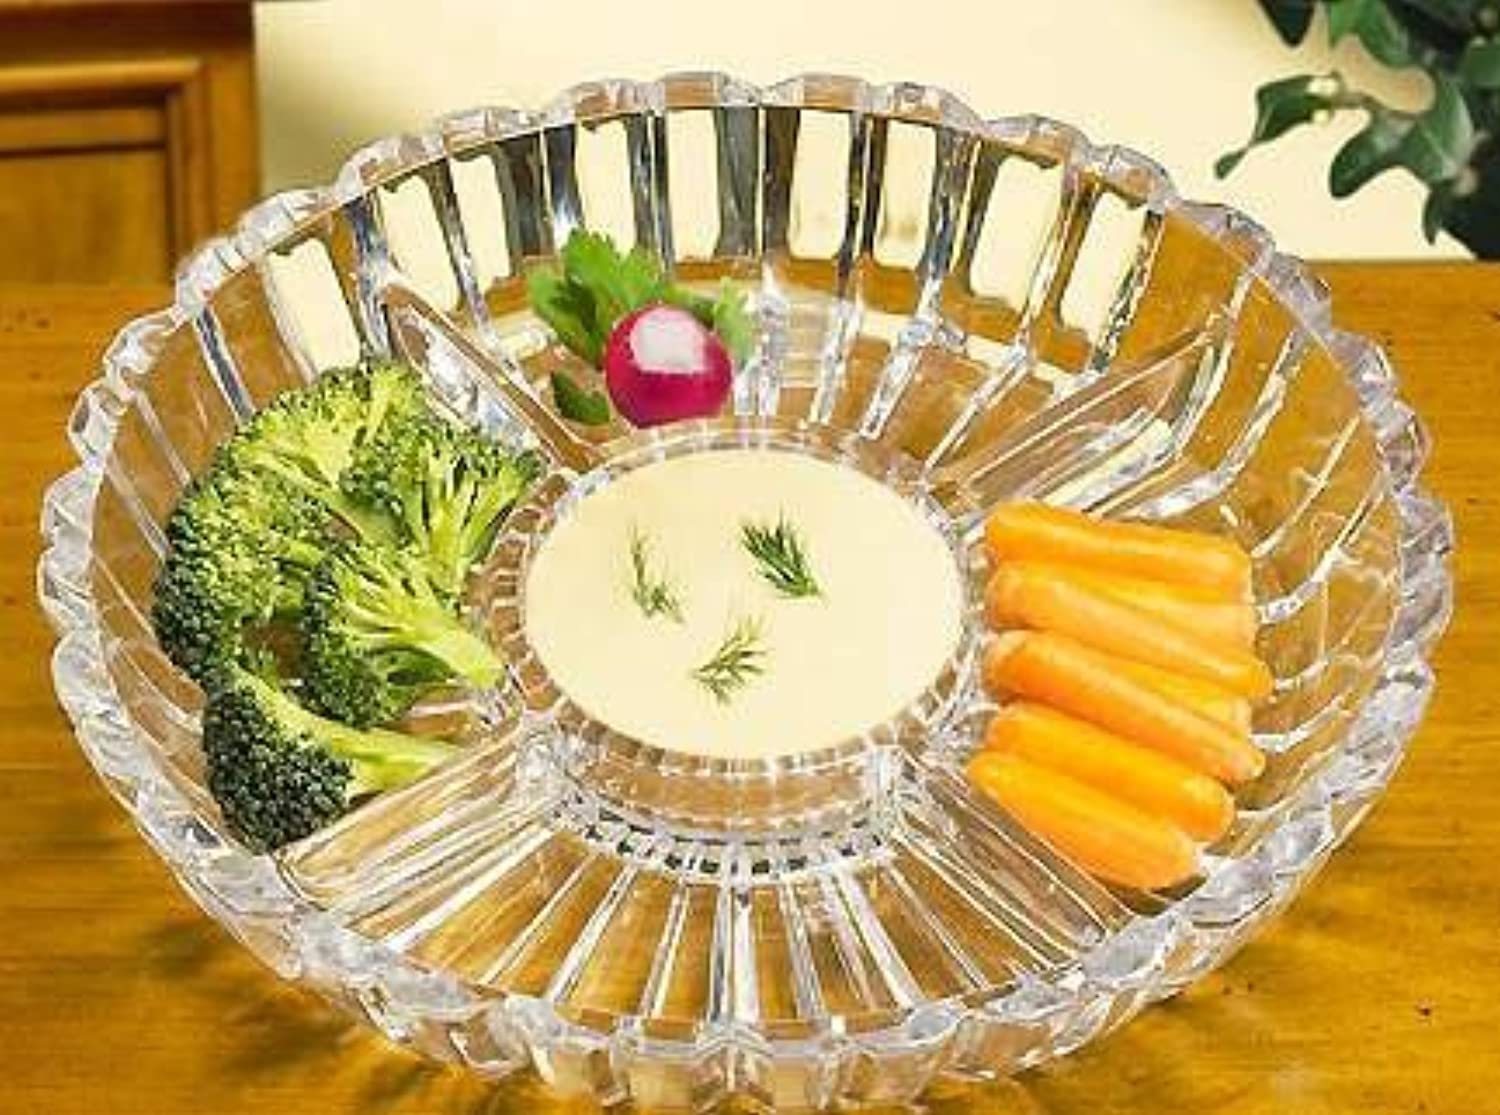 Crystal Clear Alexandria Sectional Dish Platter, 10-Inch